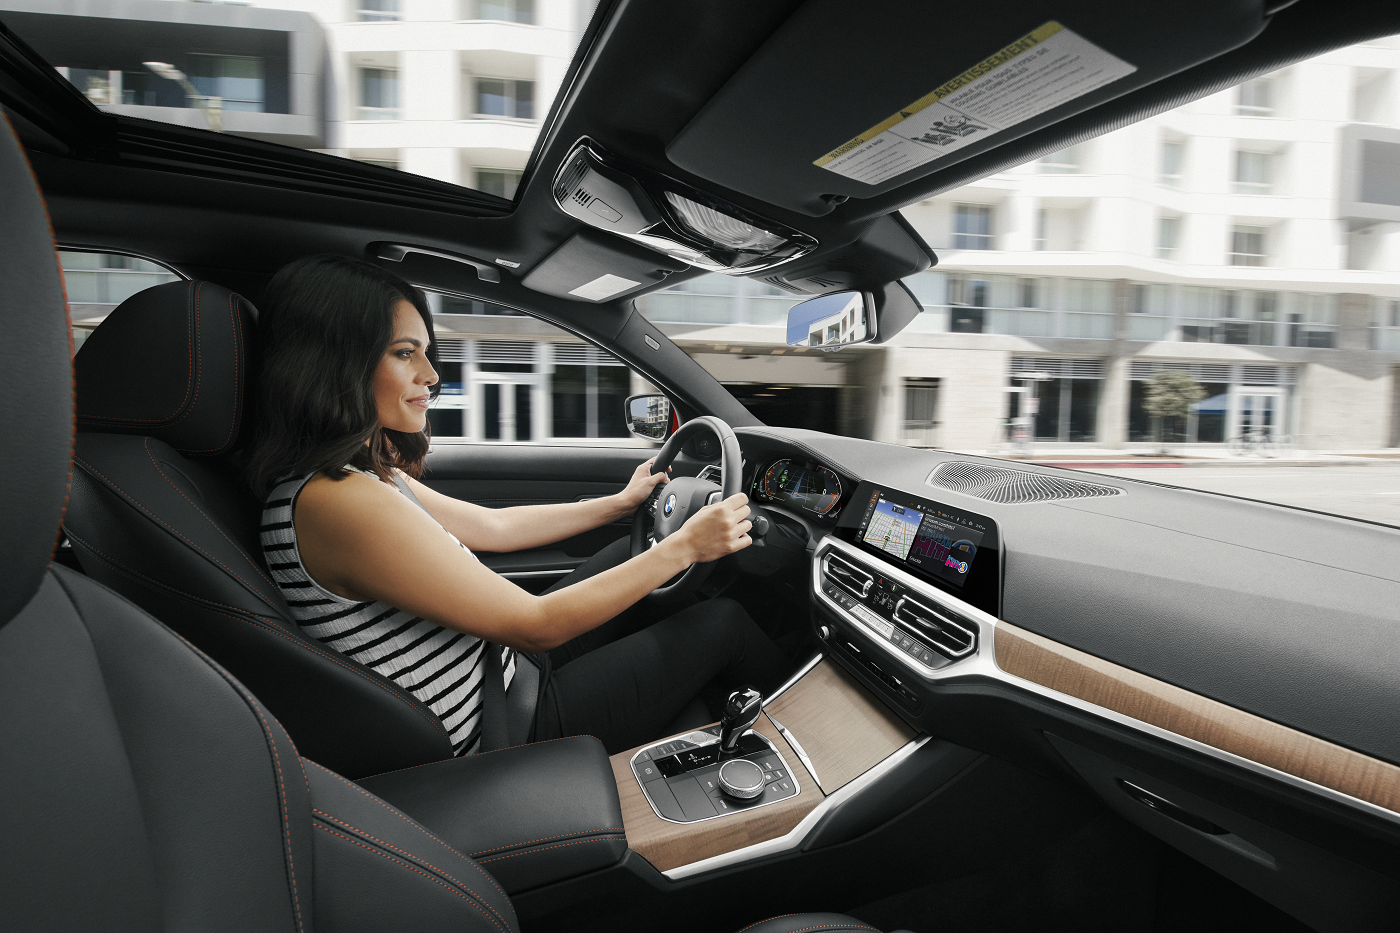 BMW 3 Series Interior Technology